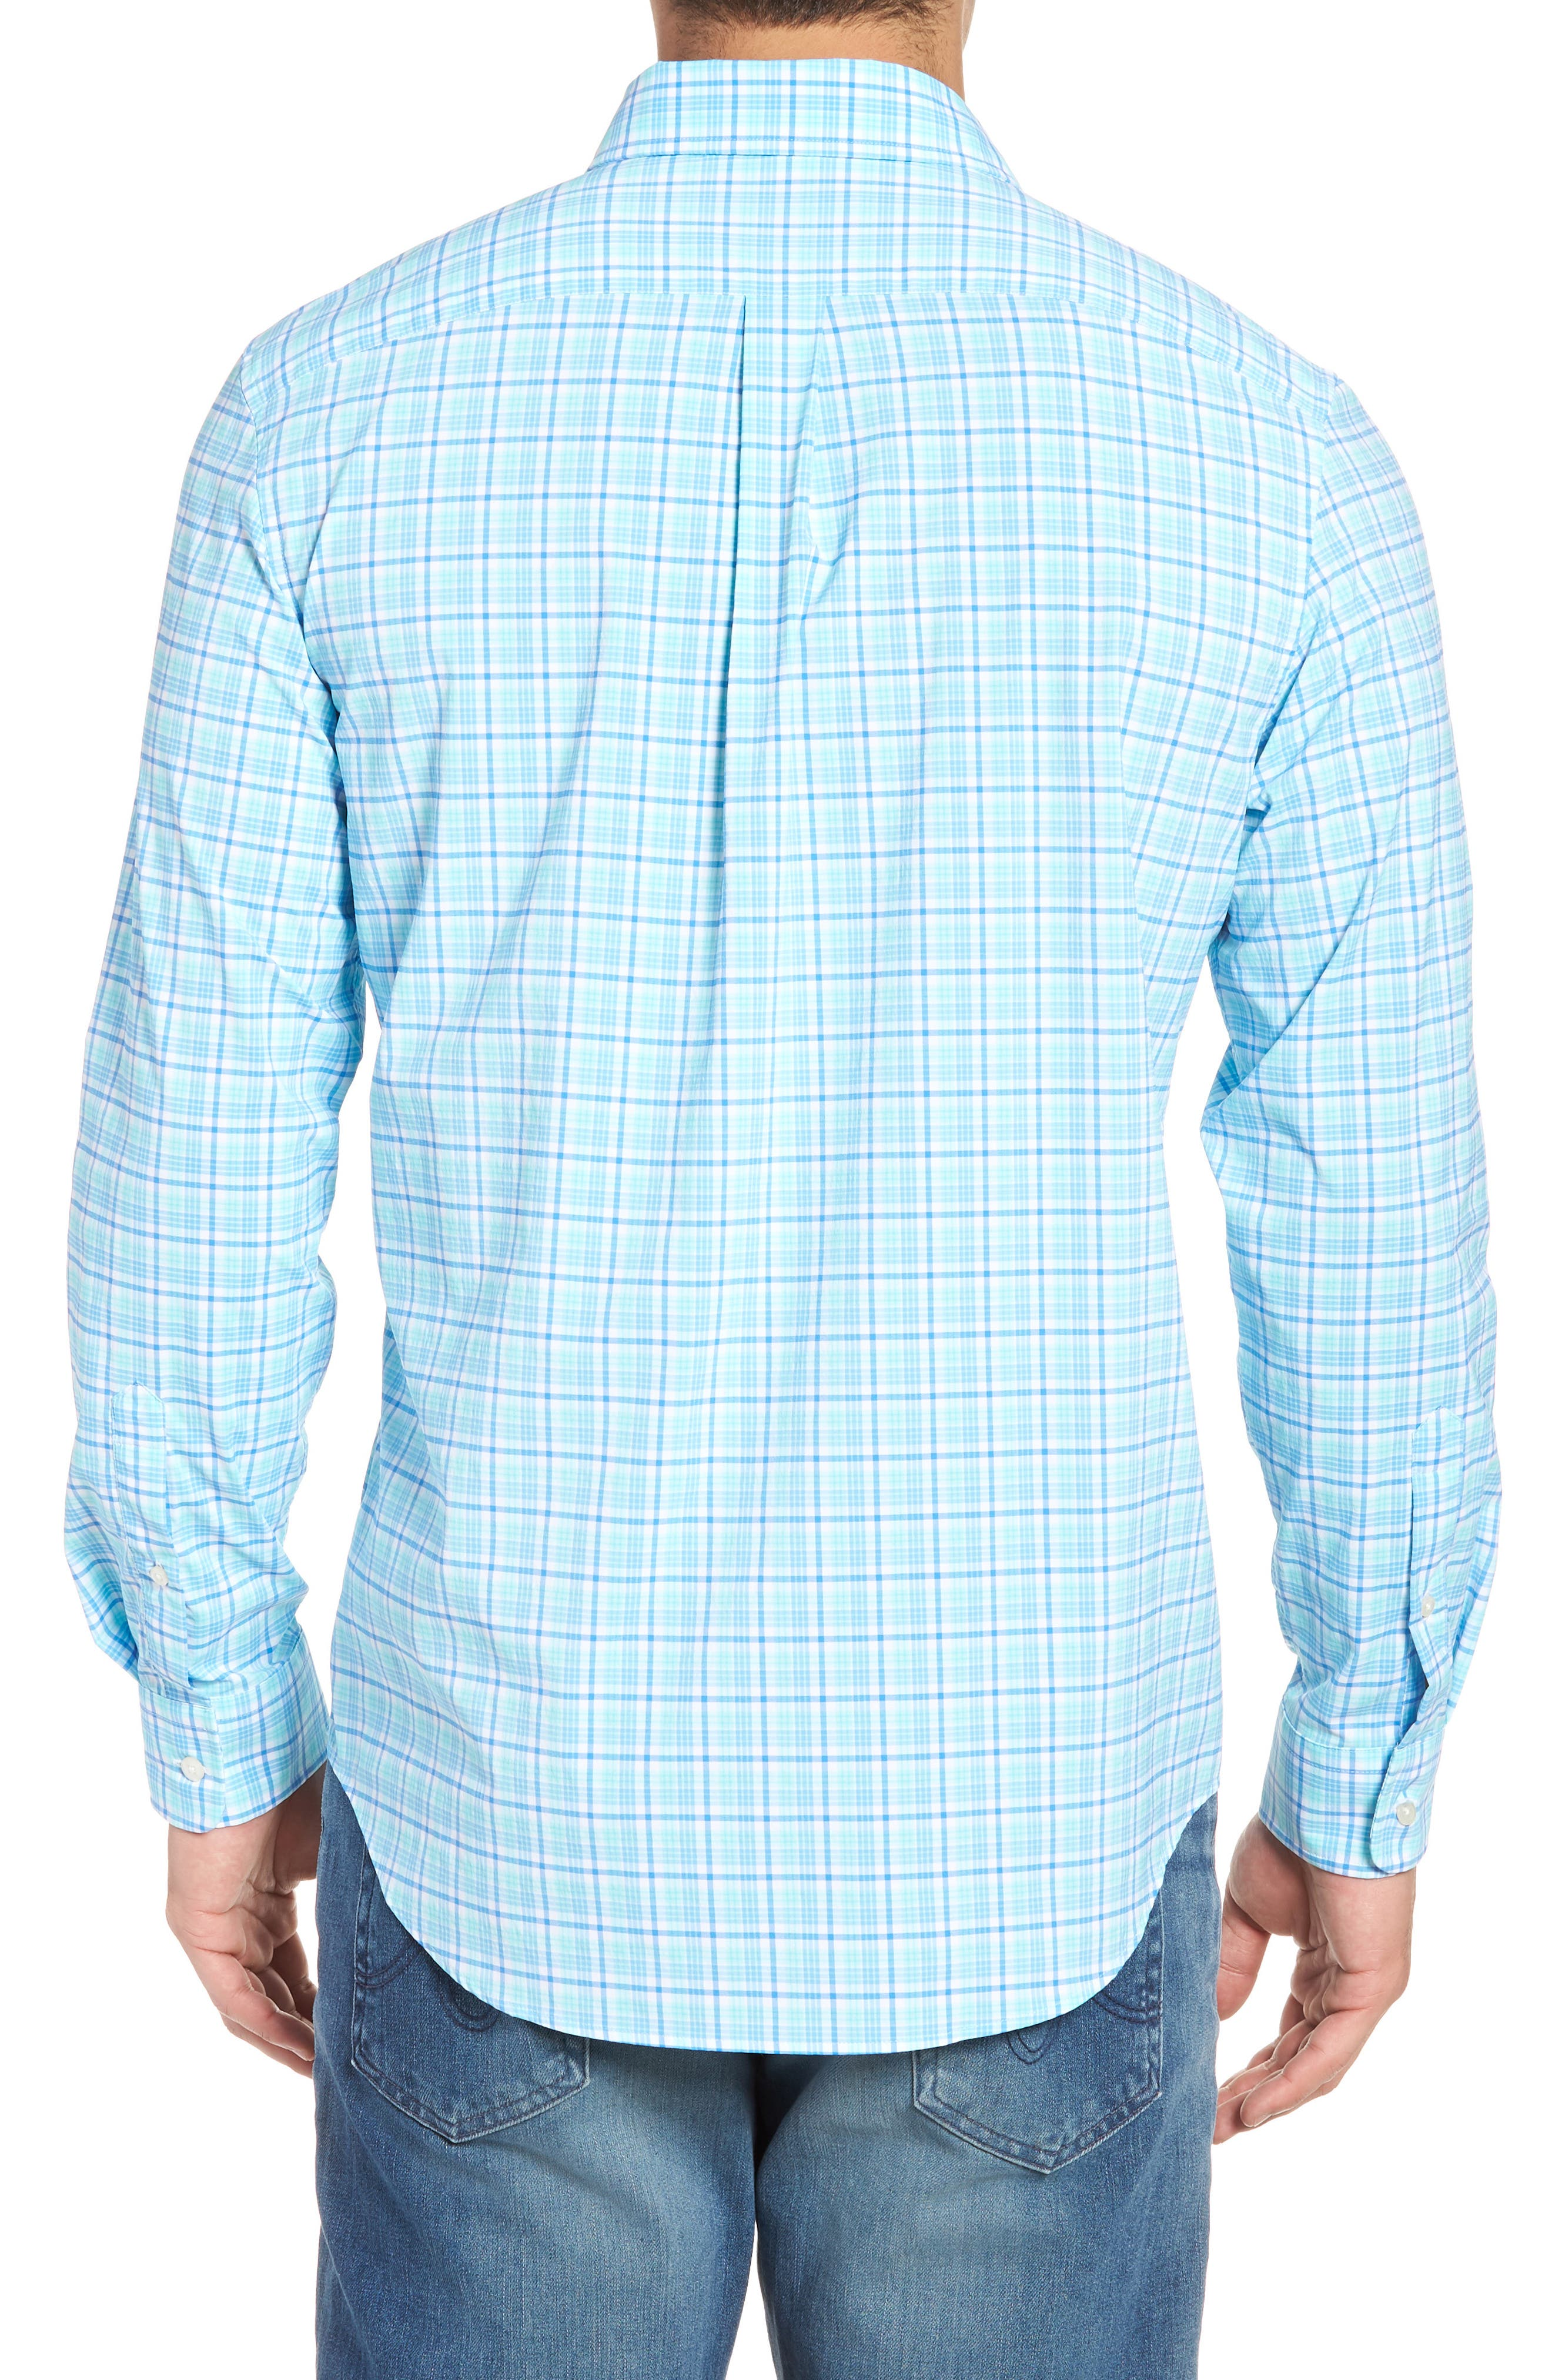 Tipsy Bar Classic Fit Stretch Plaid Sport Shirt,                             Alternate thumbnail 3, color,                             Turquoise